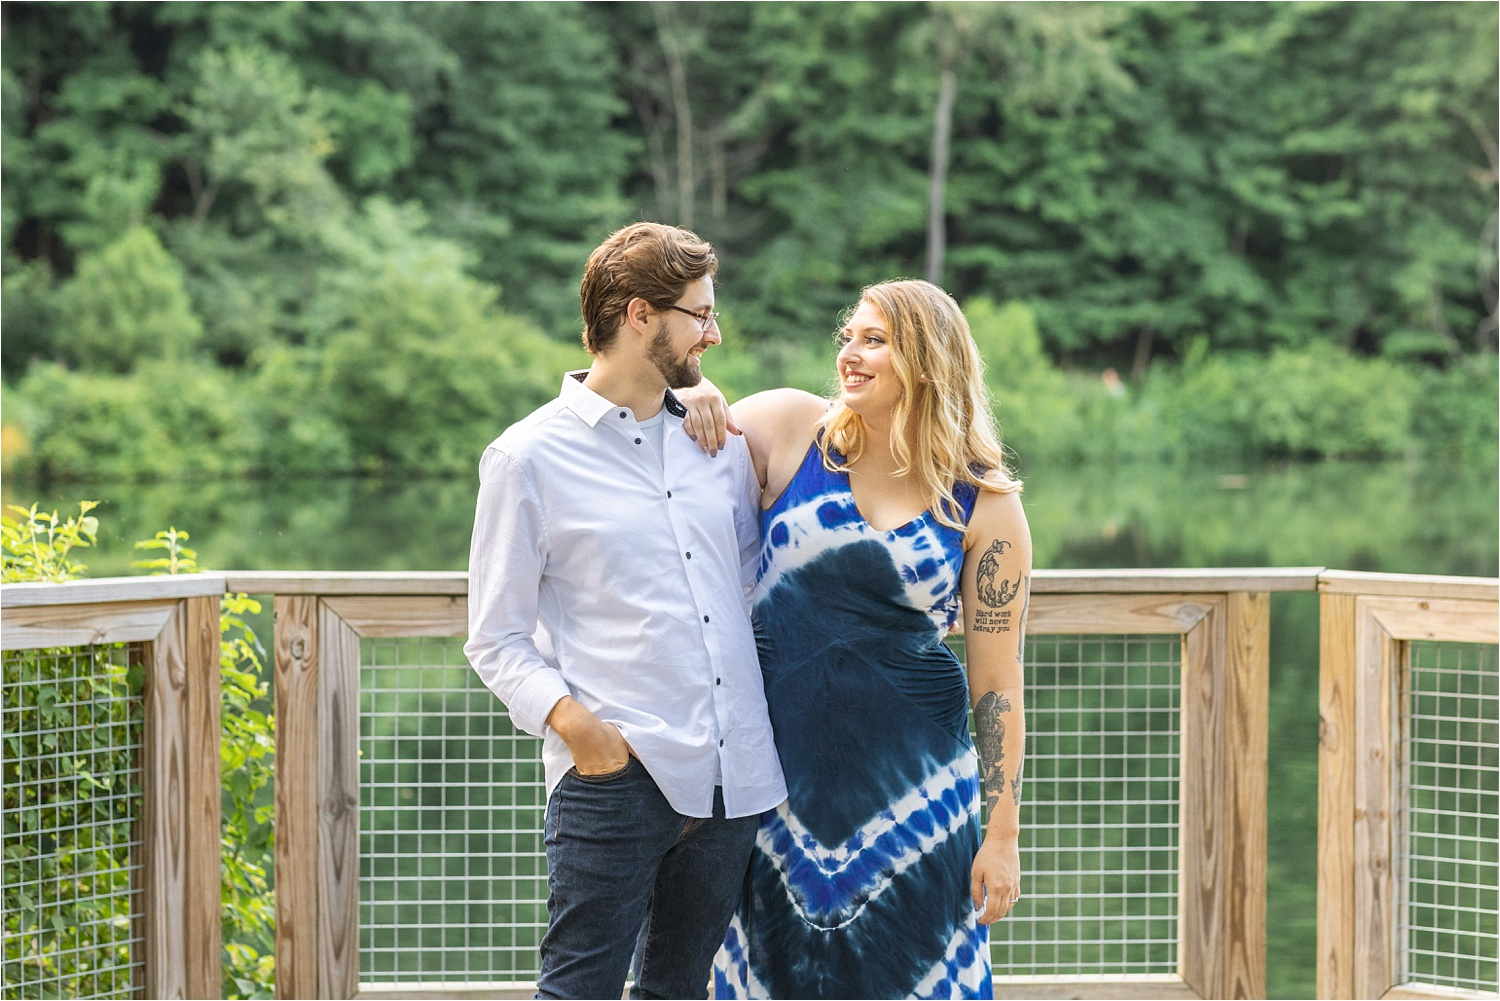 lily pond engagement session in july 2019 at mill creek park